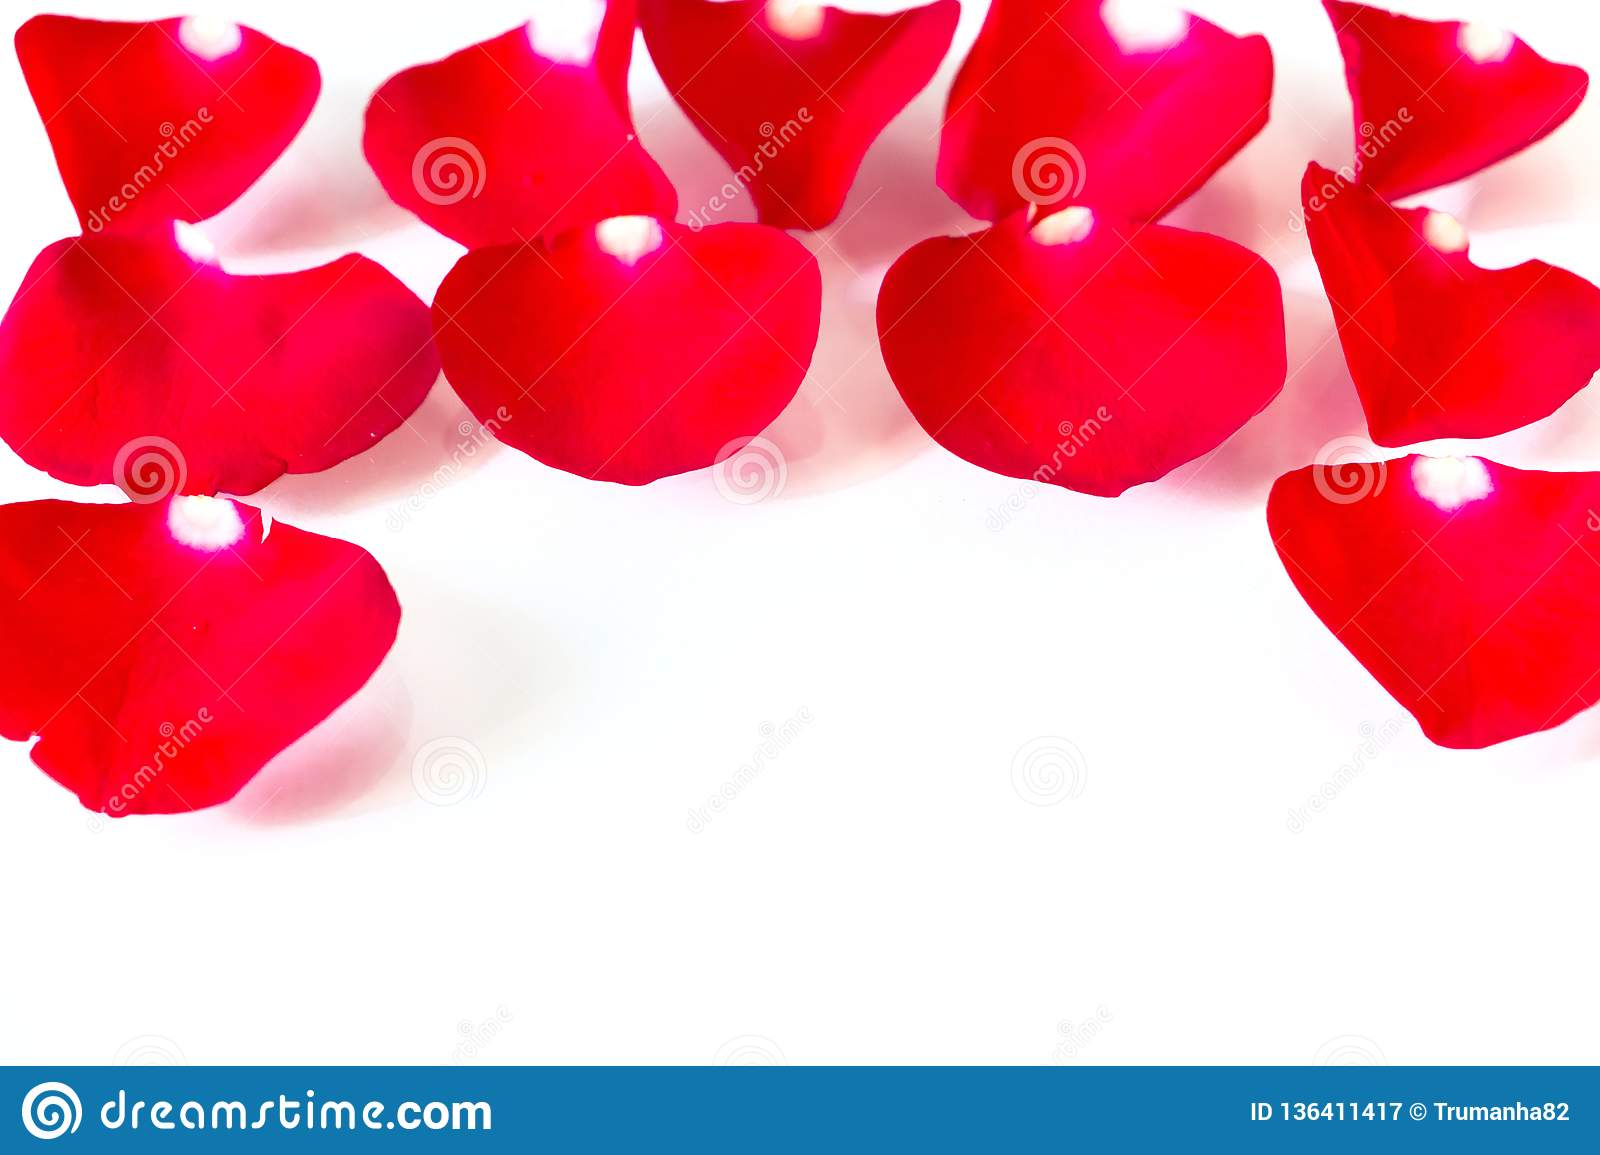 Red Rose Petals in White Background